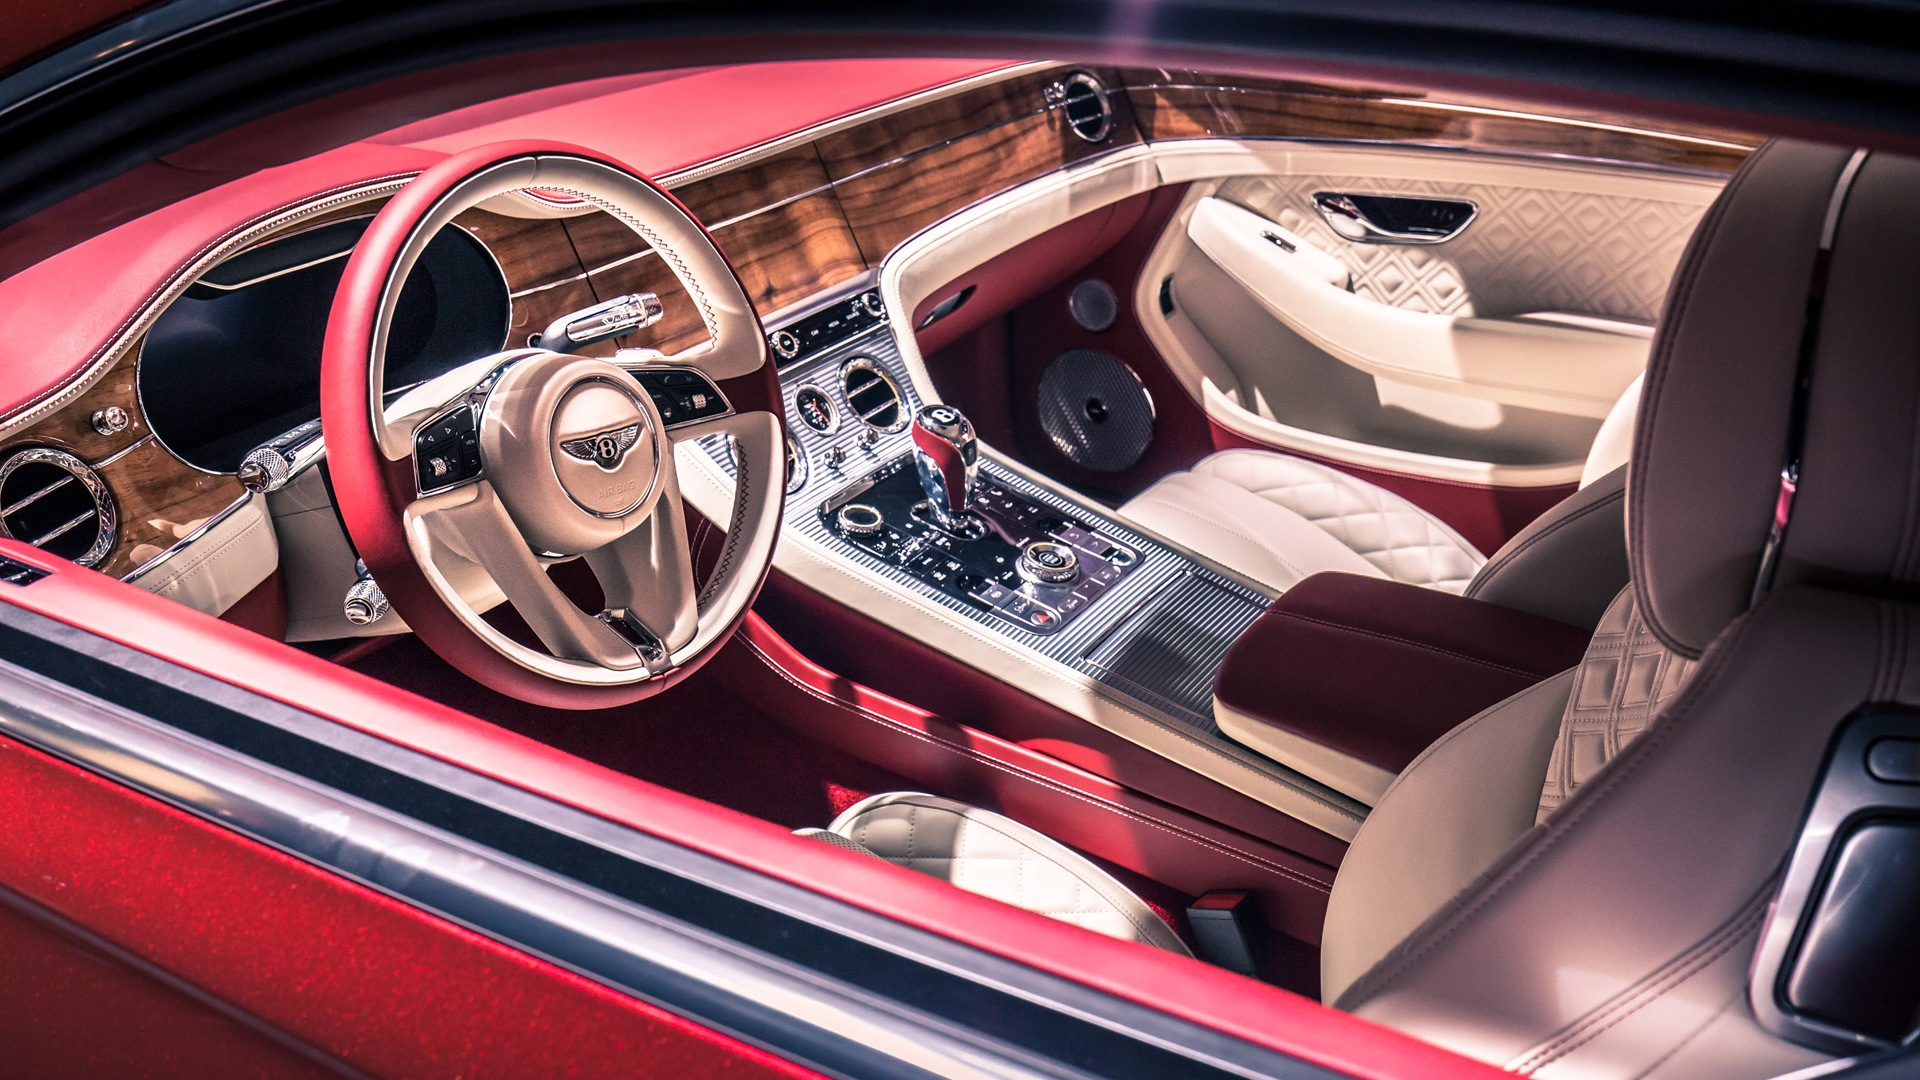 Seats Like Beds And Mini Fridges Step Inside The Most Luxurious Cars Ever